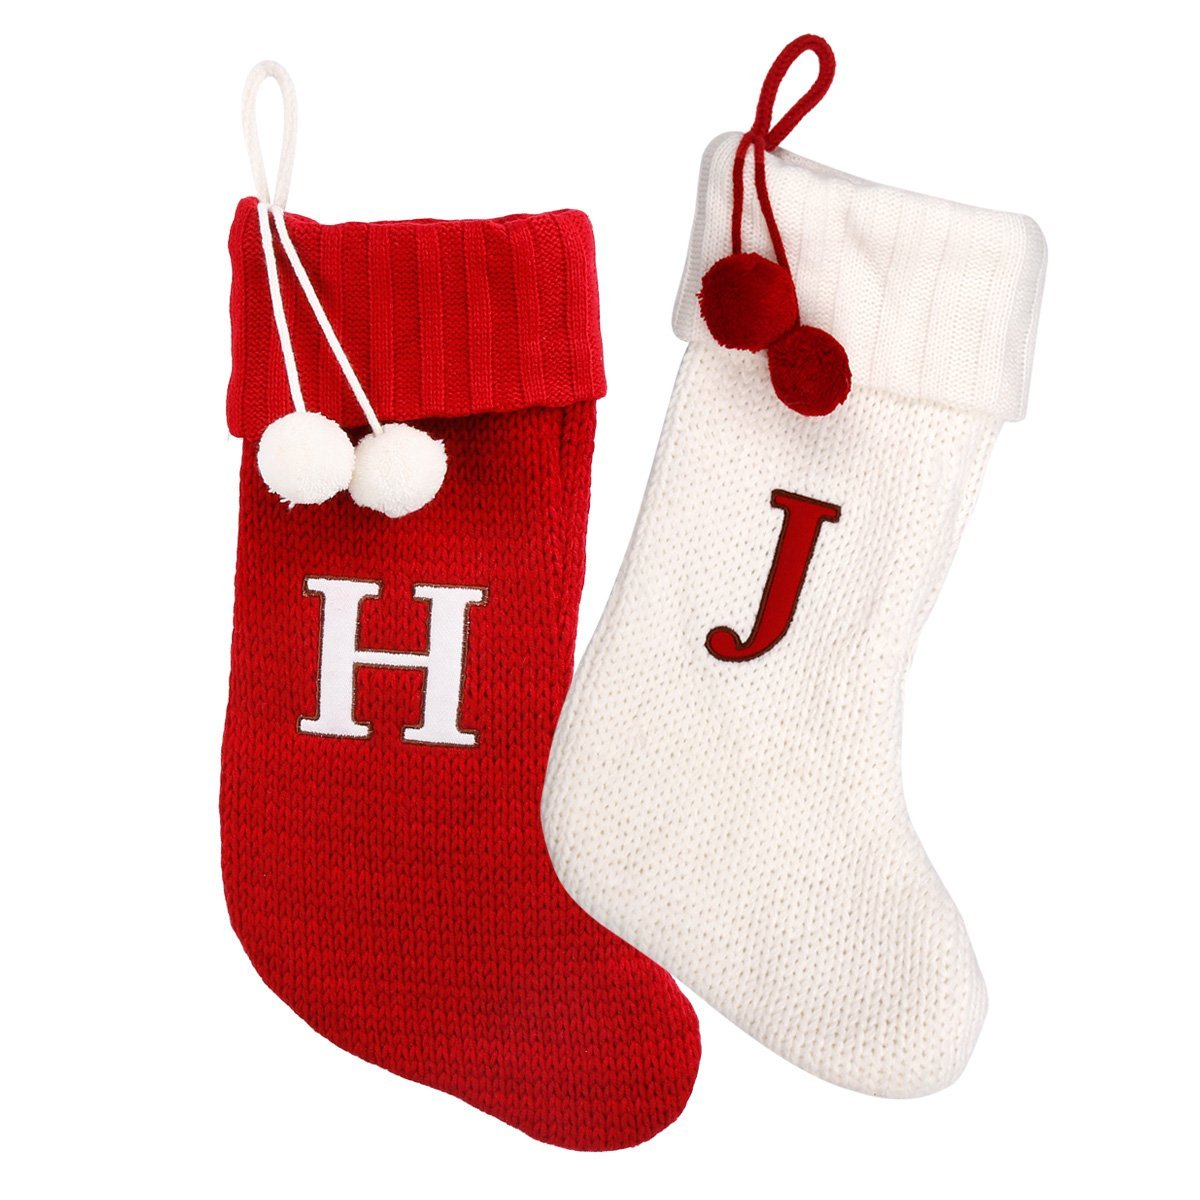 Monogram Knit Stocking